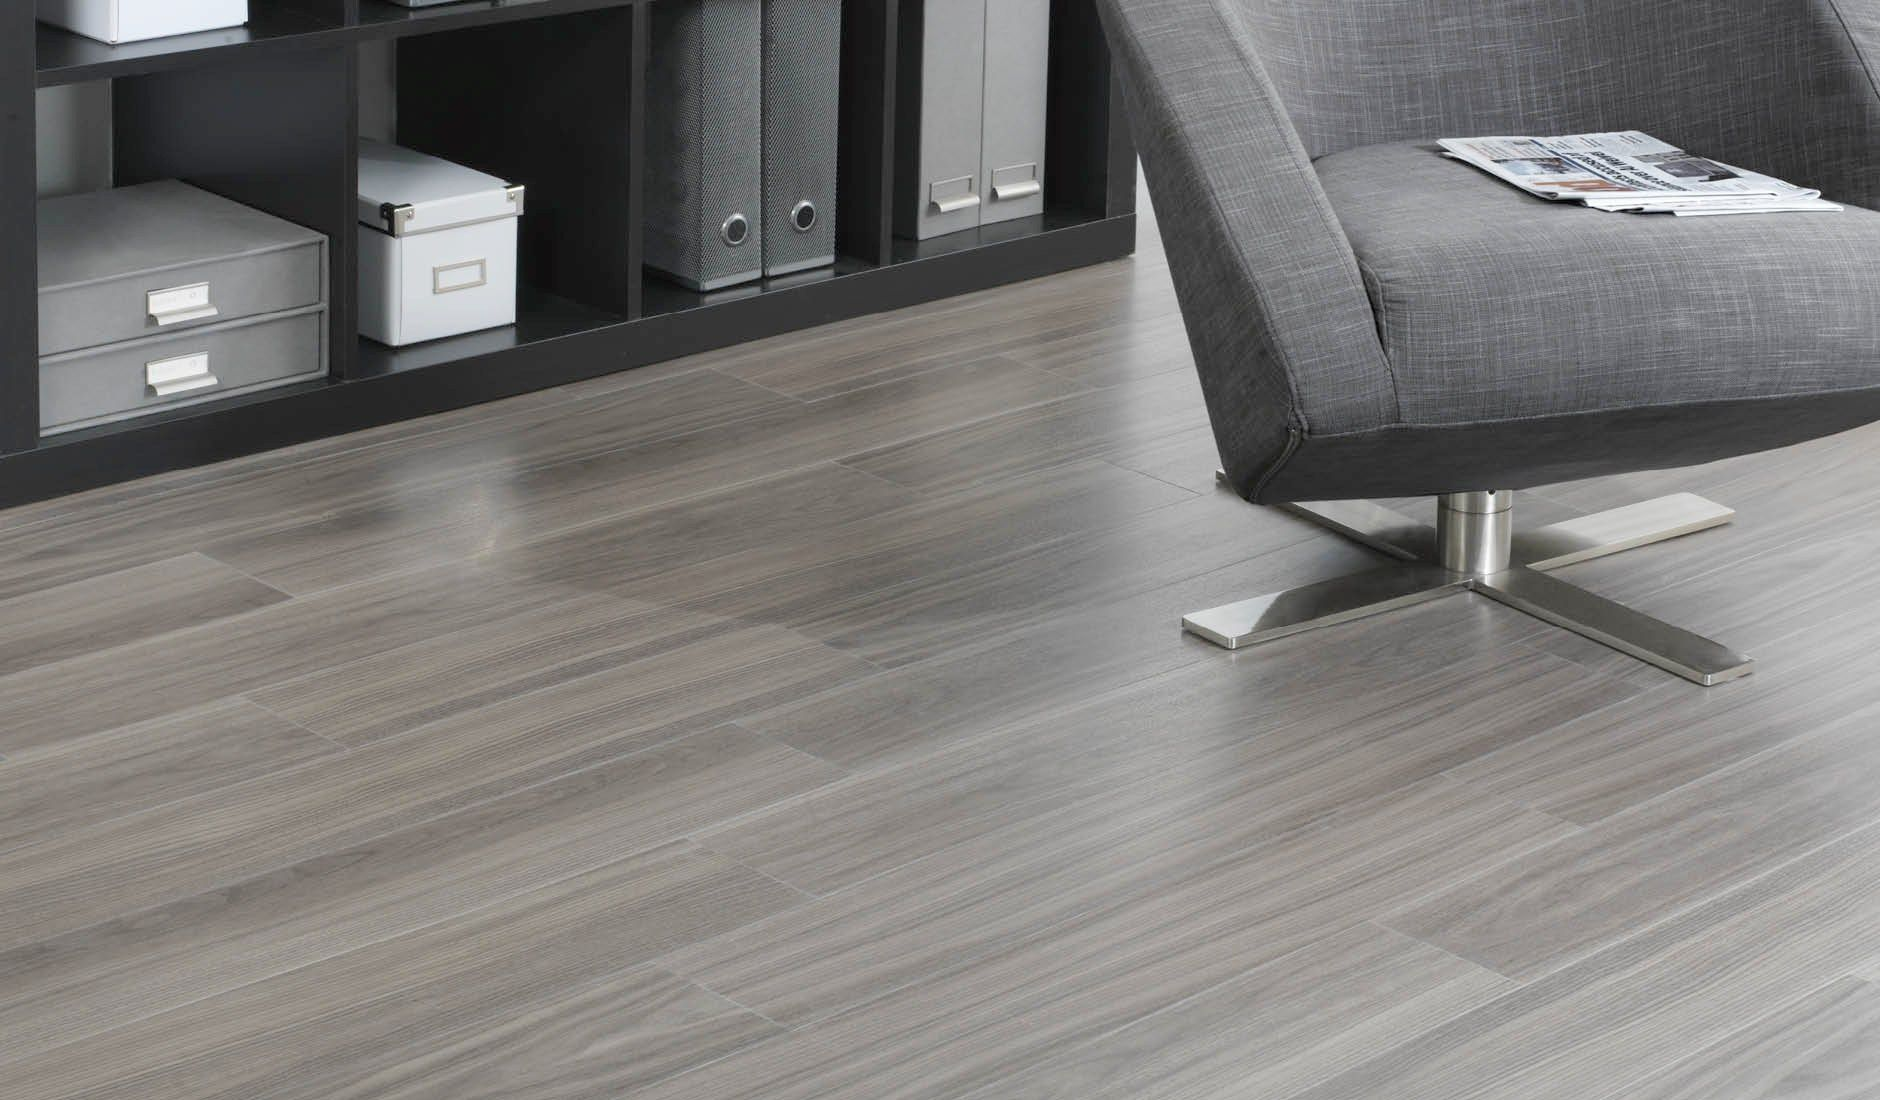 office floor tiles. Simple Office Carpet Tiles VS Laminate Flooring In Office And Floor F